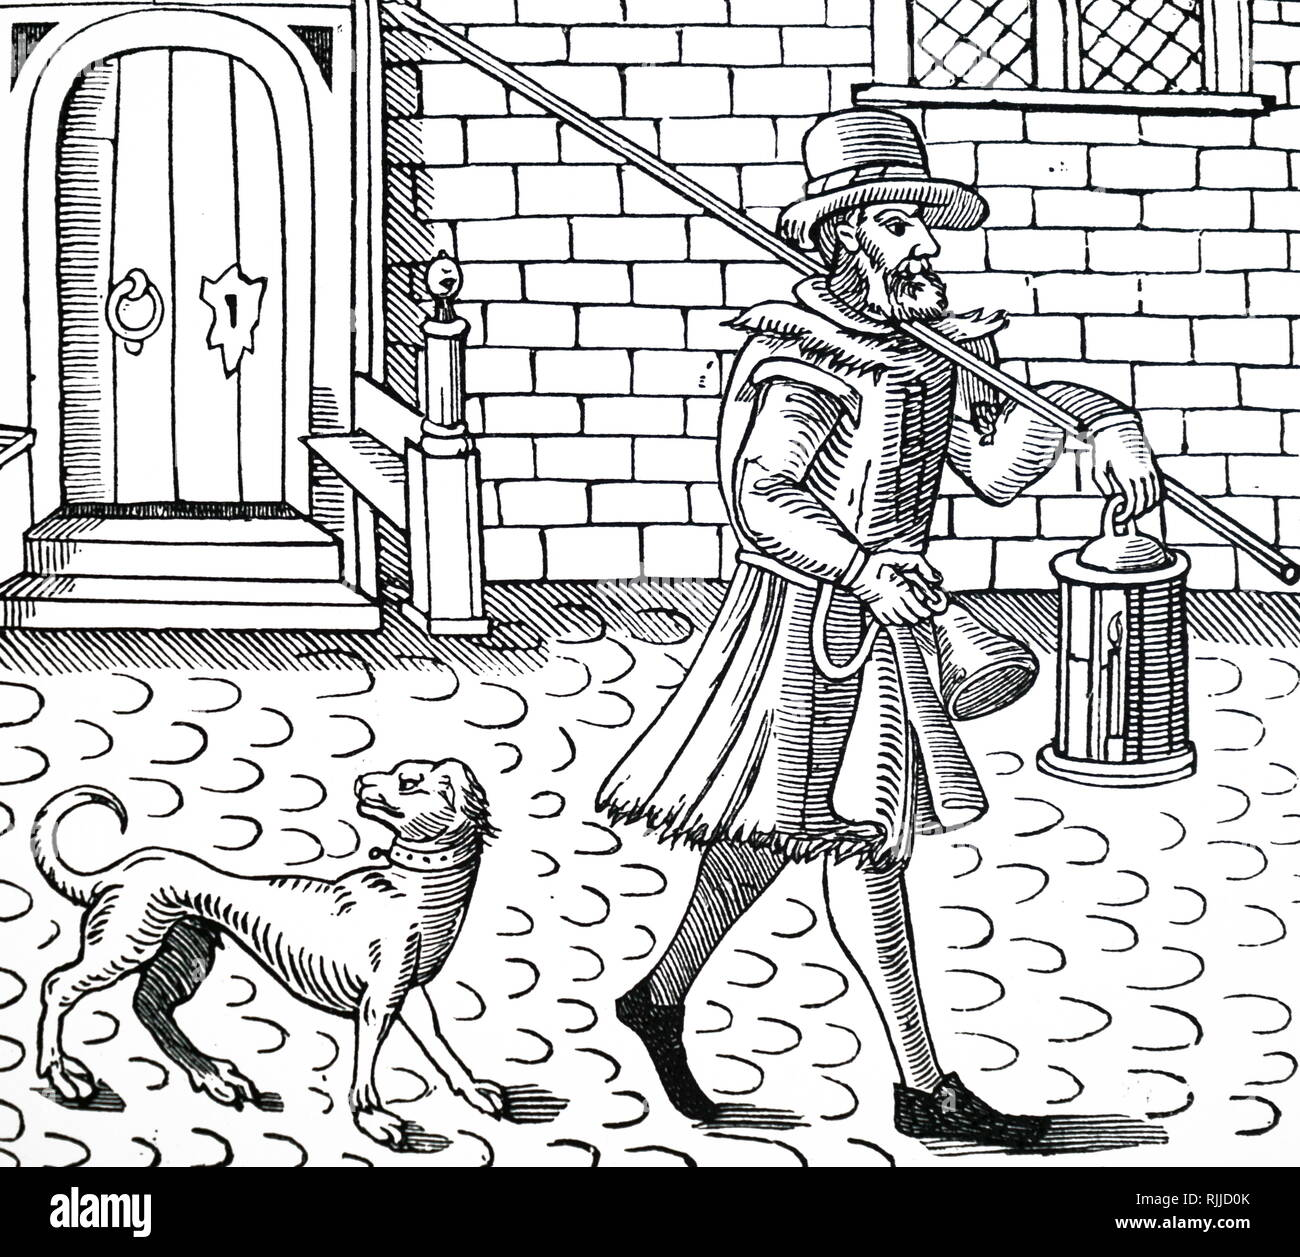 A woodcut engraving depicting a Bellman of London. A bellman or town crier is an officer of the court who makes public pronouncements as required by the court, and can also be used to make public announcements in the streets. Dated 17th century - Stock Image